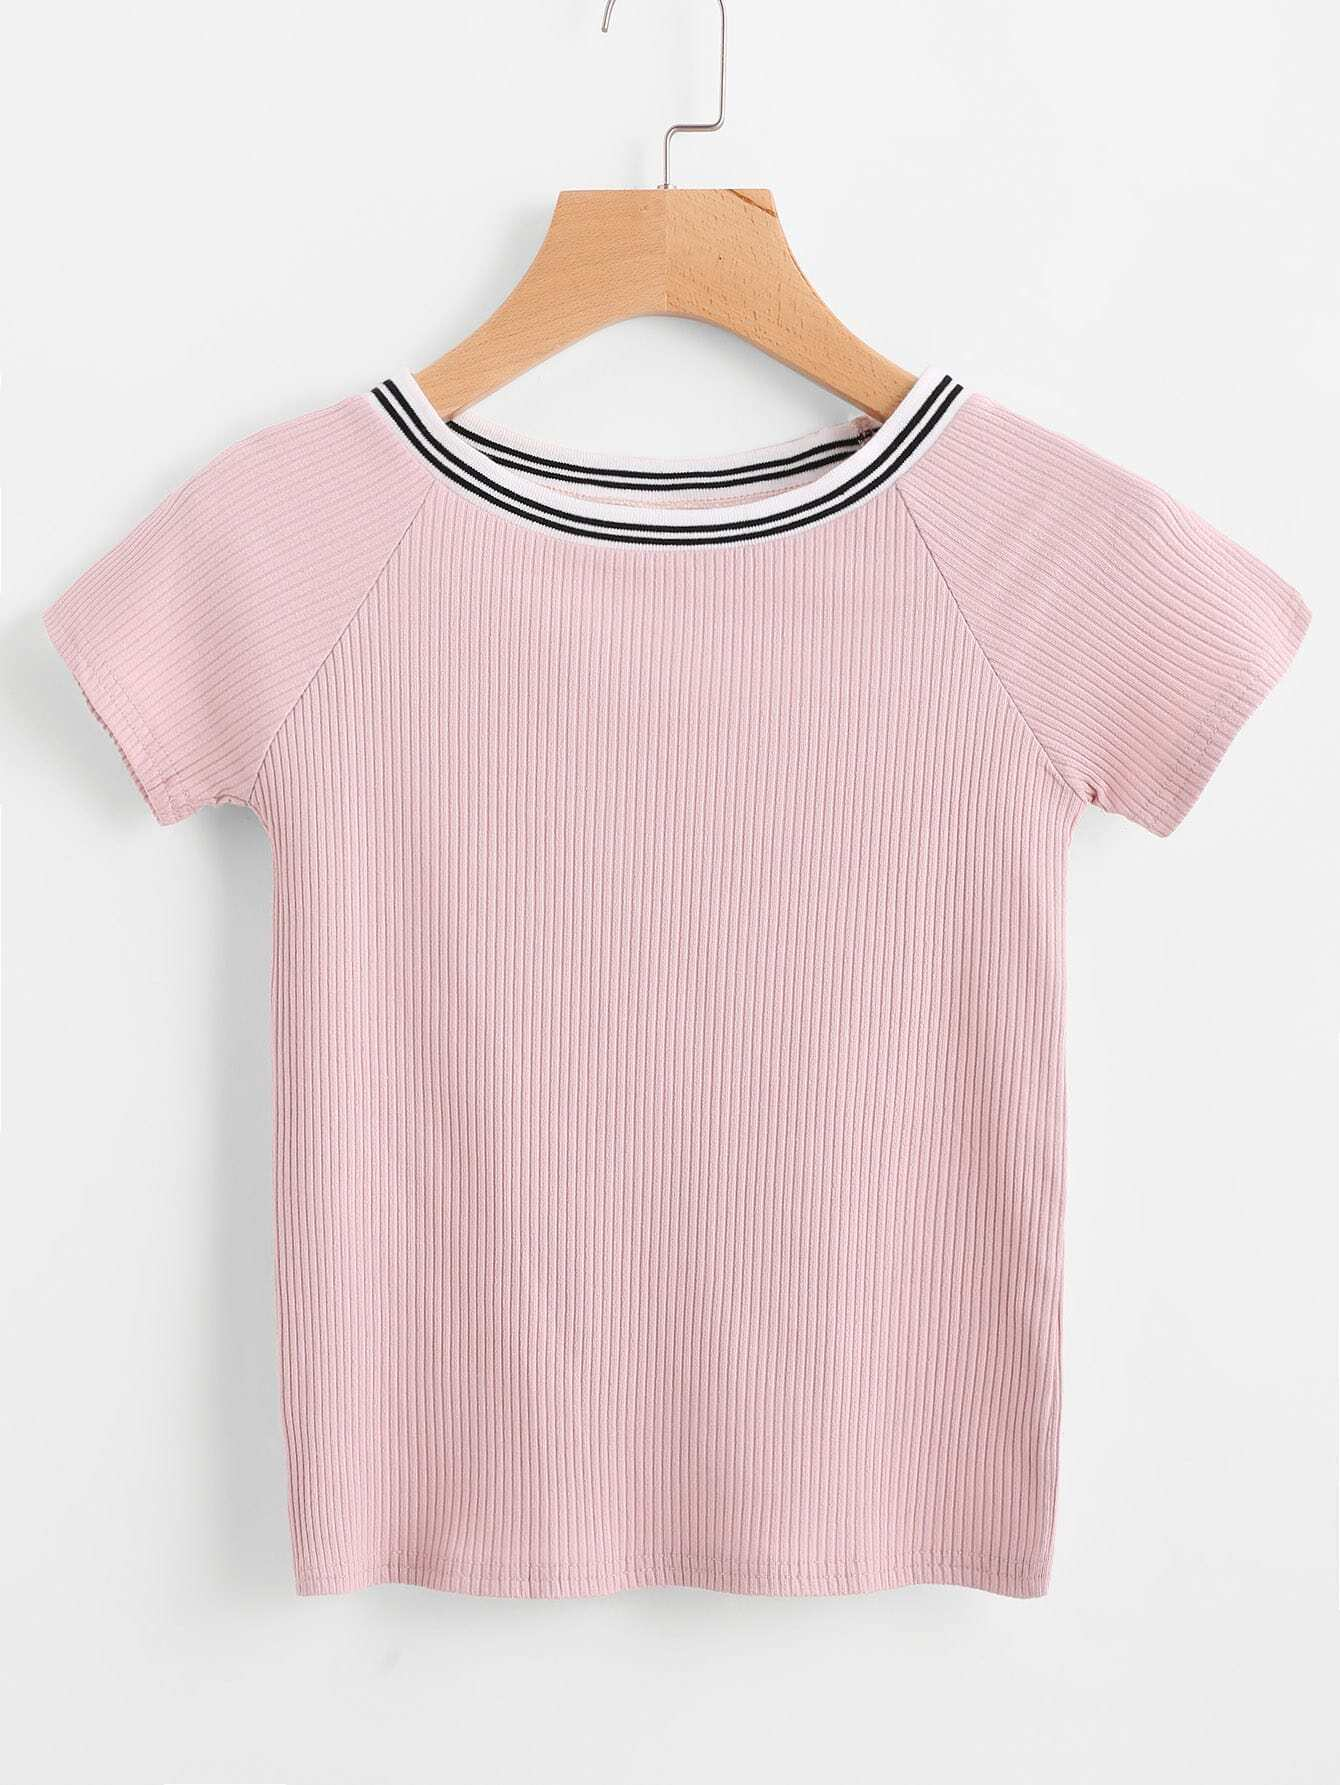 Contrast Striped Trim Ribbed Tee